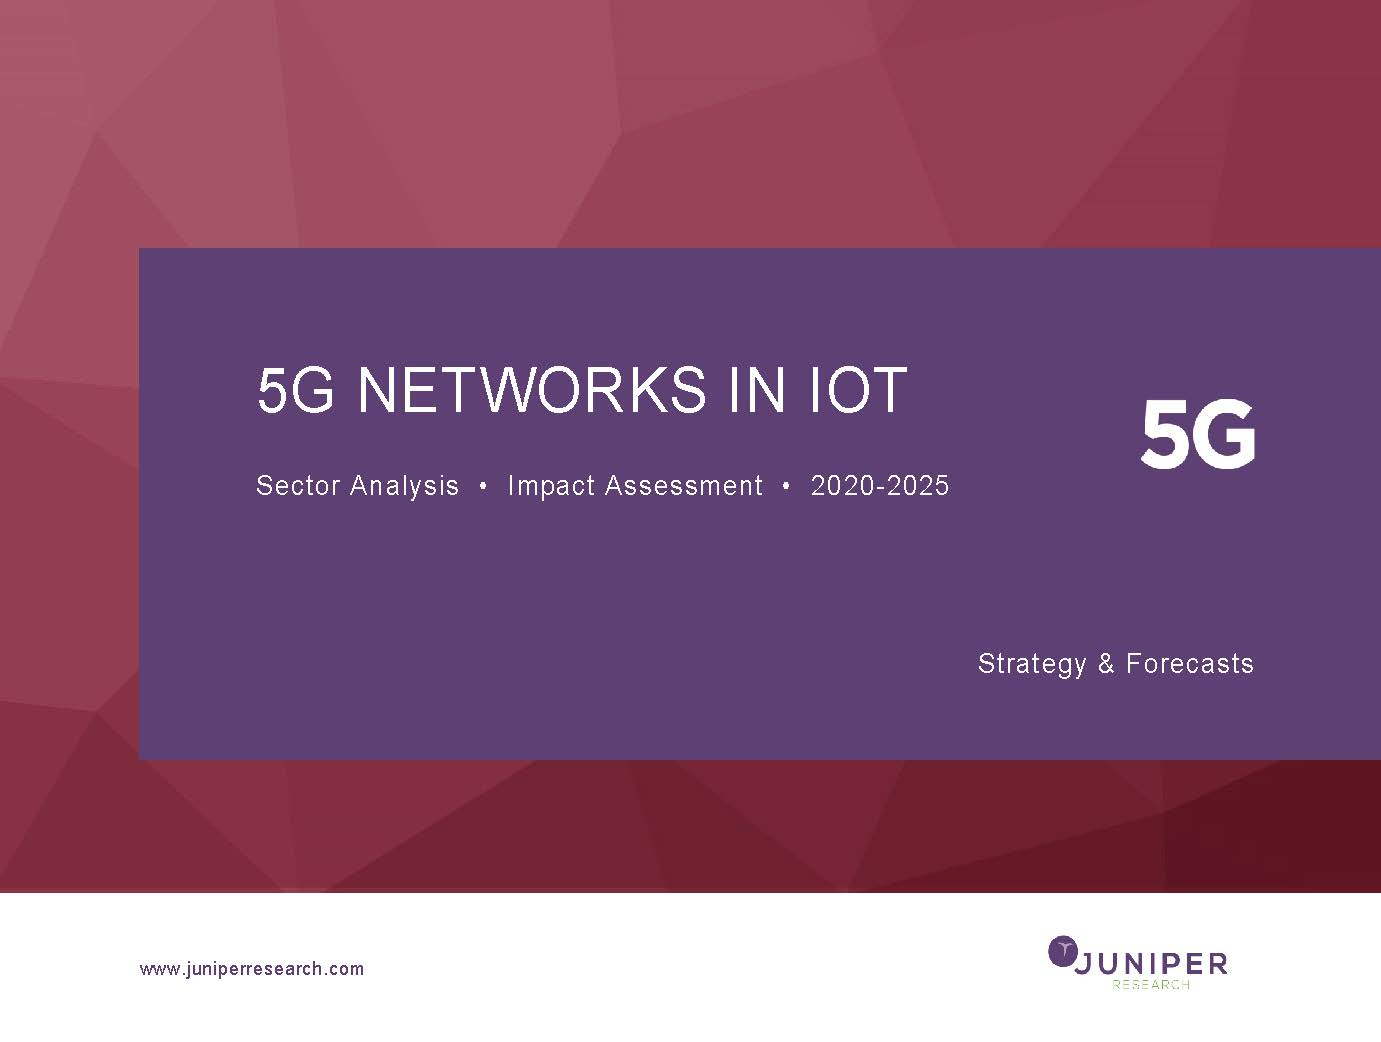 5G Networks in IoT